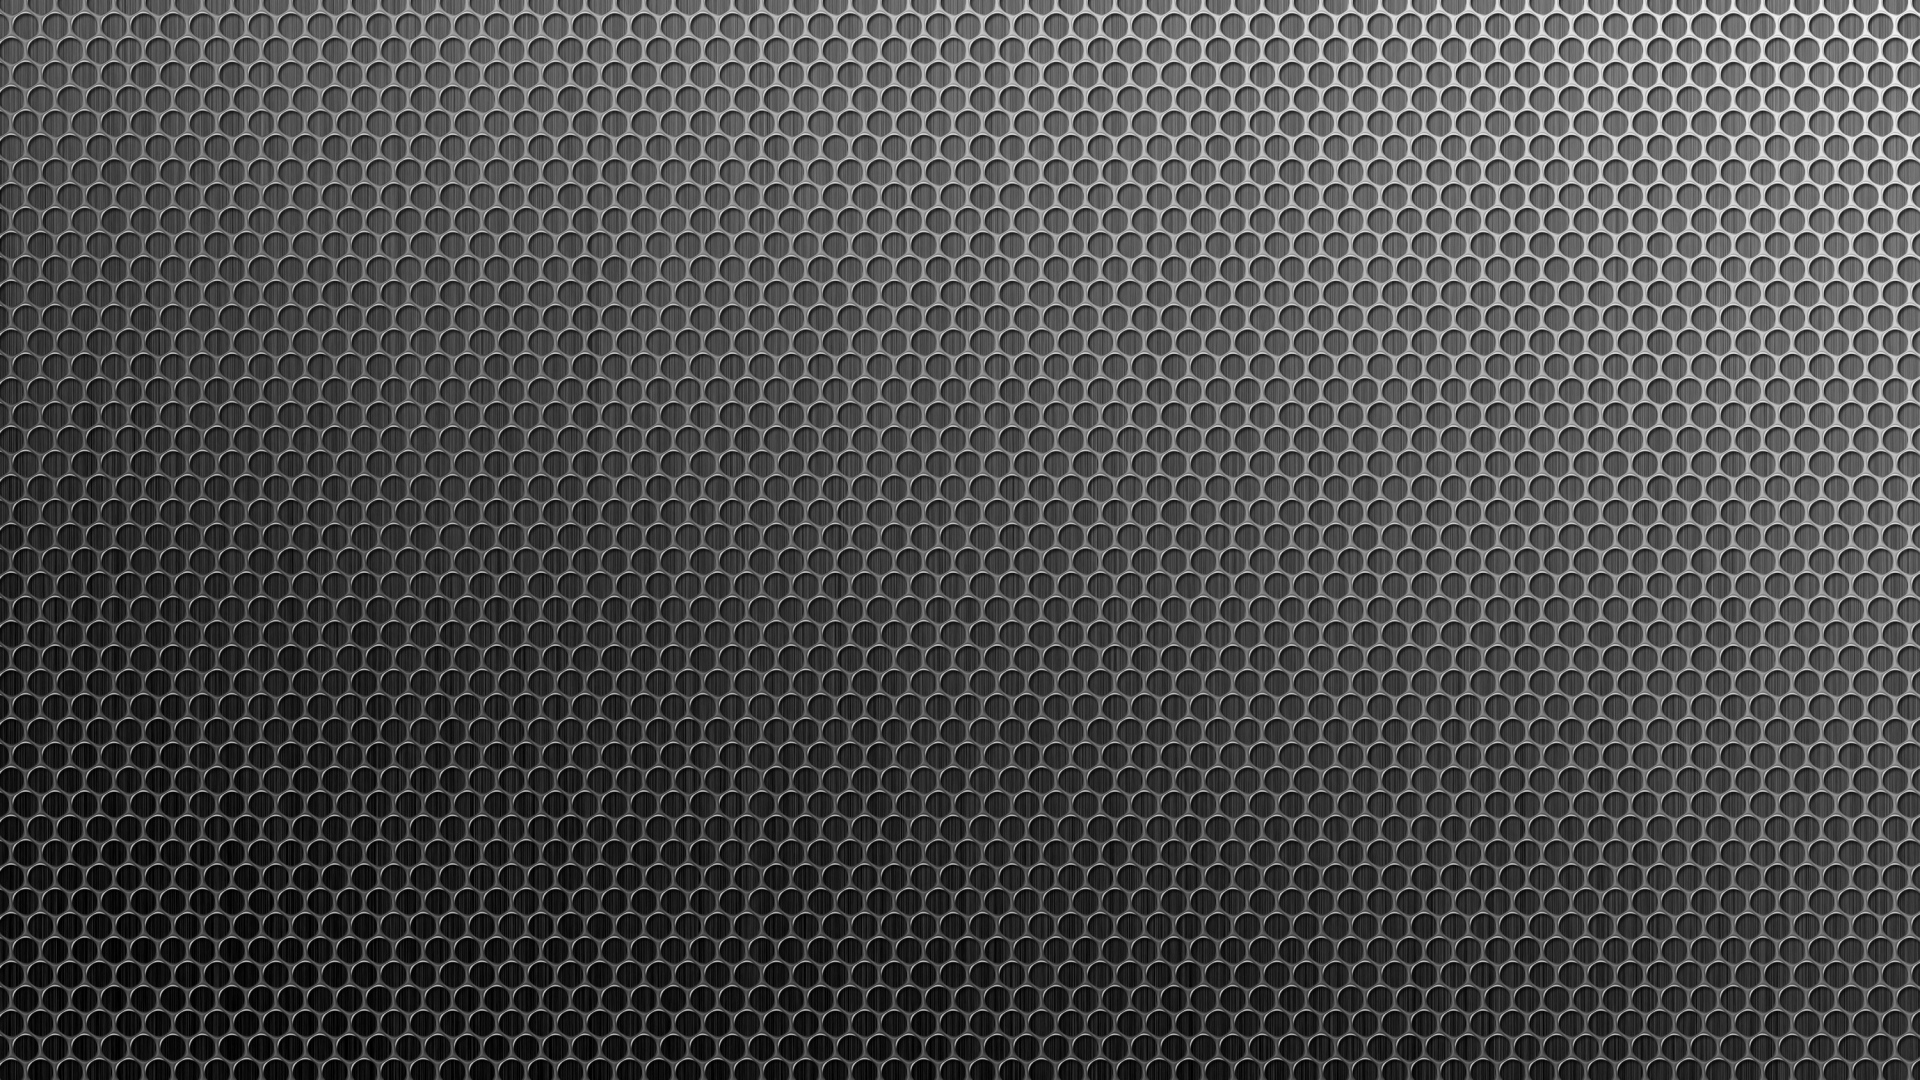 dotted texture wallpaper 1920x1080 - photo #16